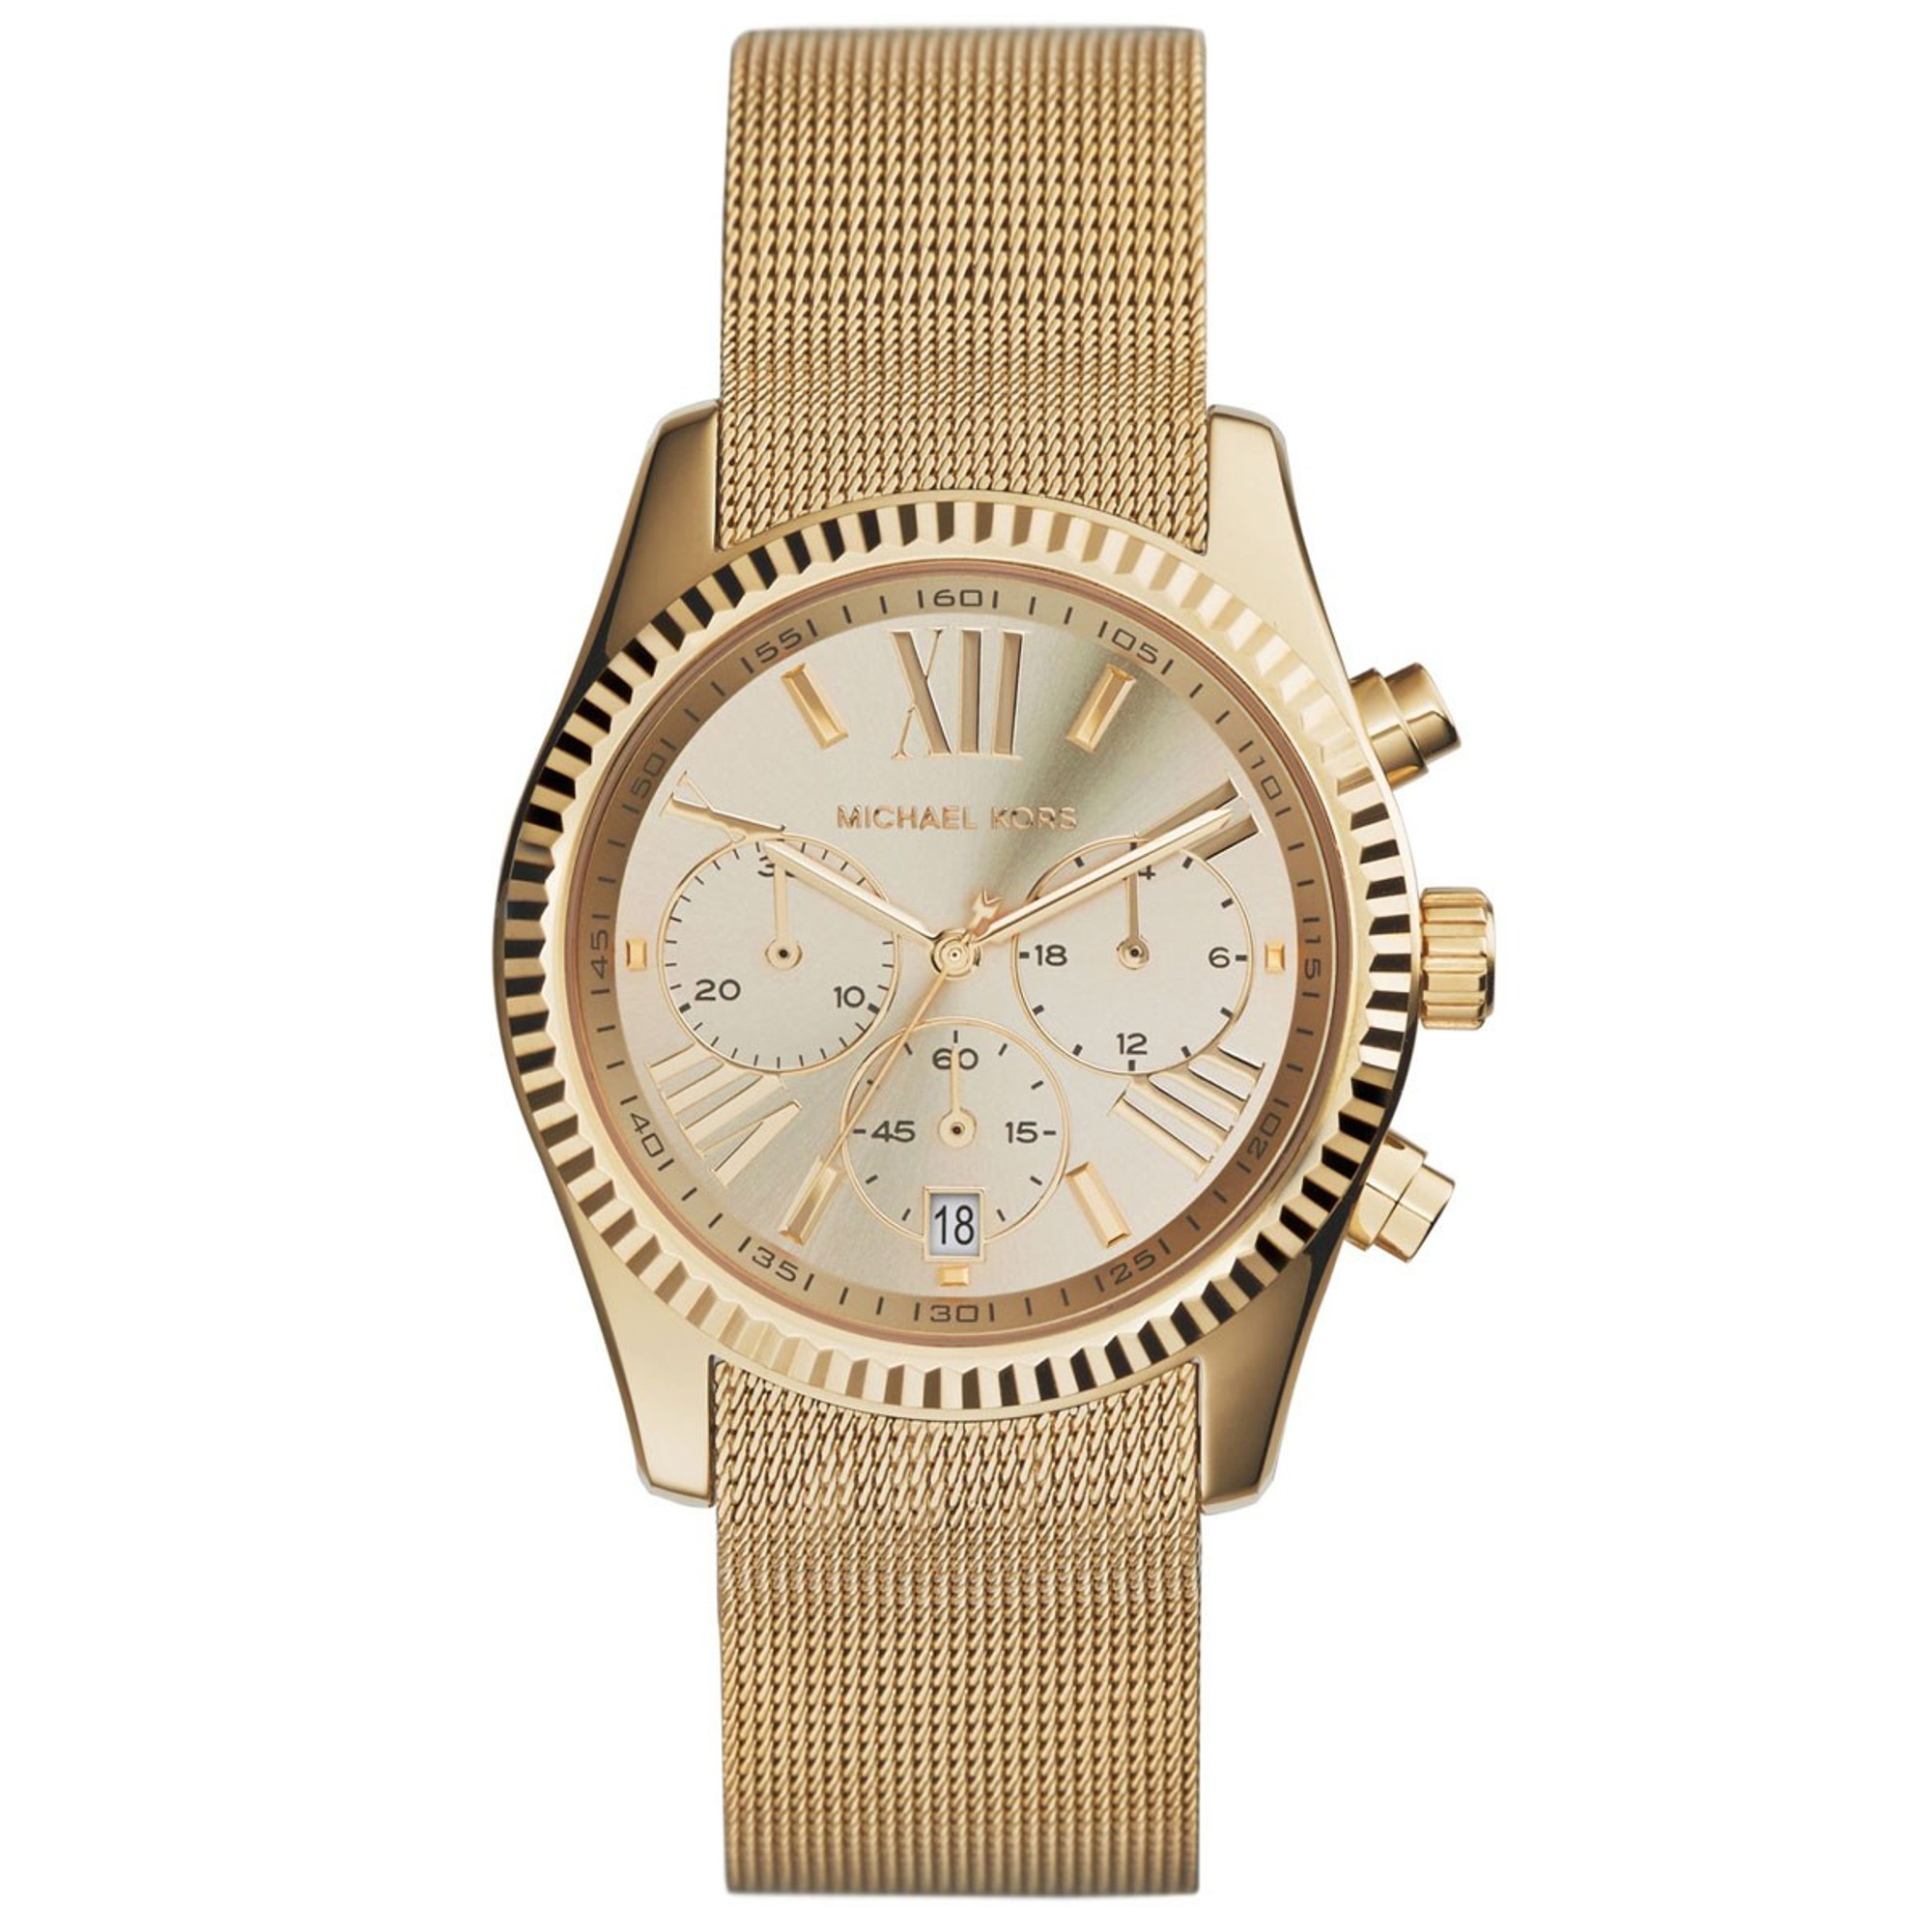 MICHAEL KORS Lexington Chronograph MK5938